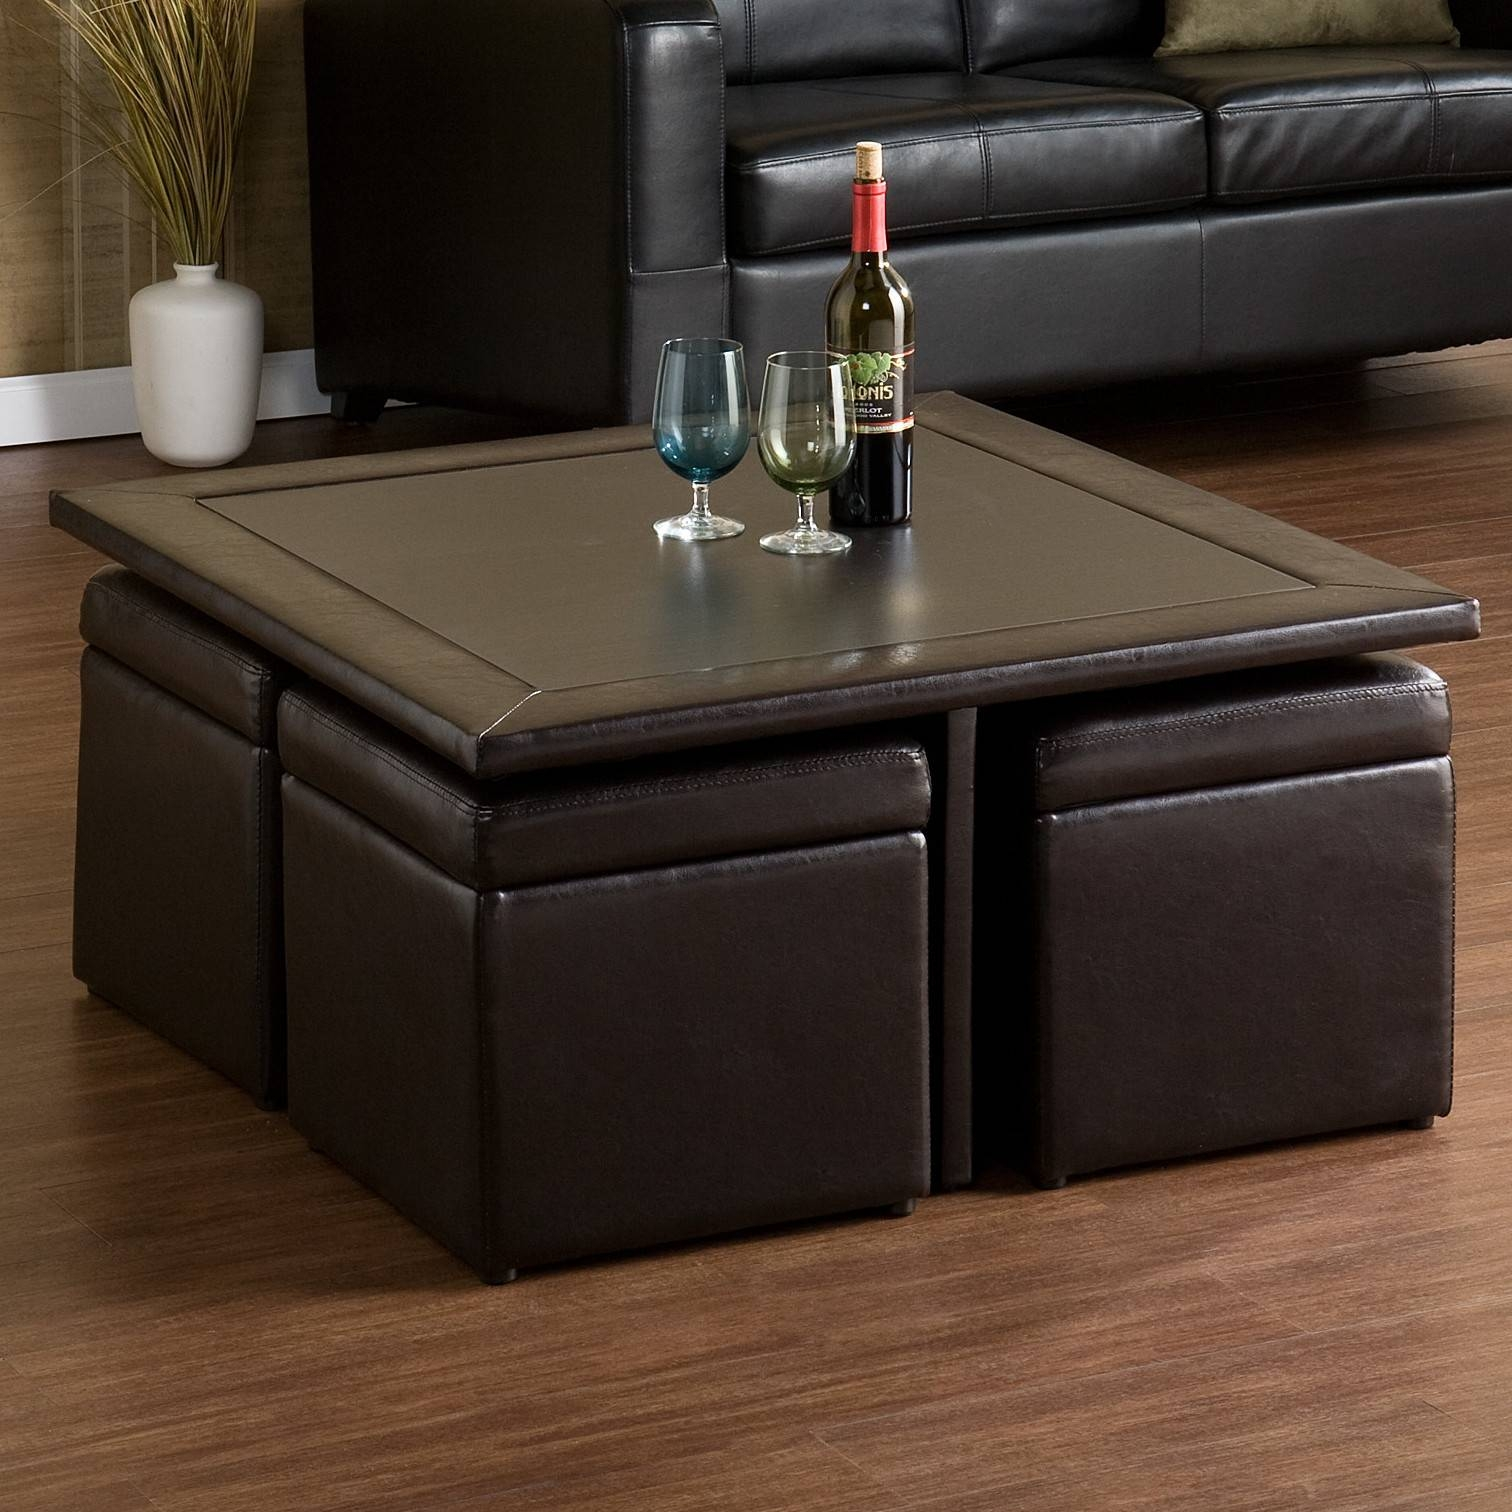 Shop Pool Tables Plus | Decorative Table Decoration inside Wayfair Coffee Table Sets (Image 28 of 30)